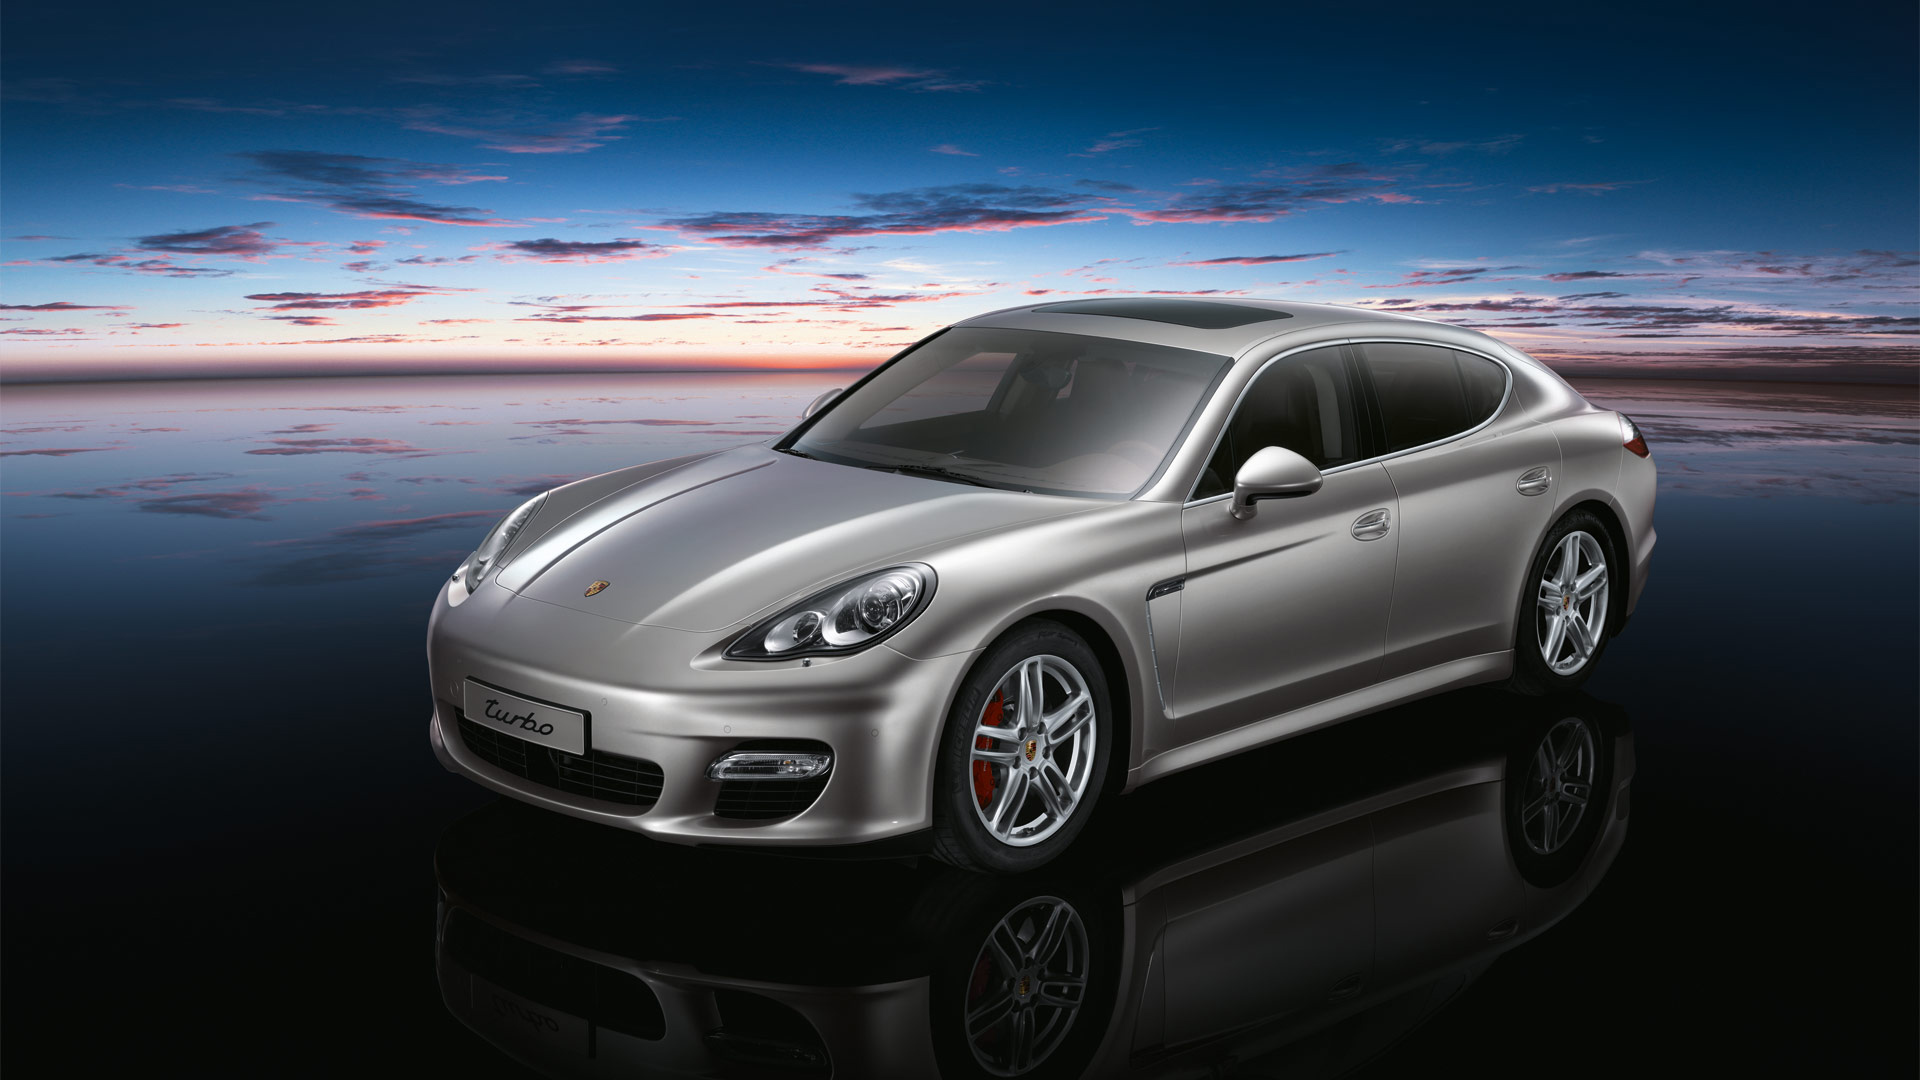 Porsche Panamera Turbo 594.24 Kb